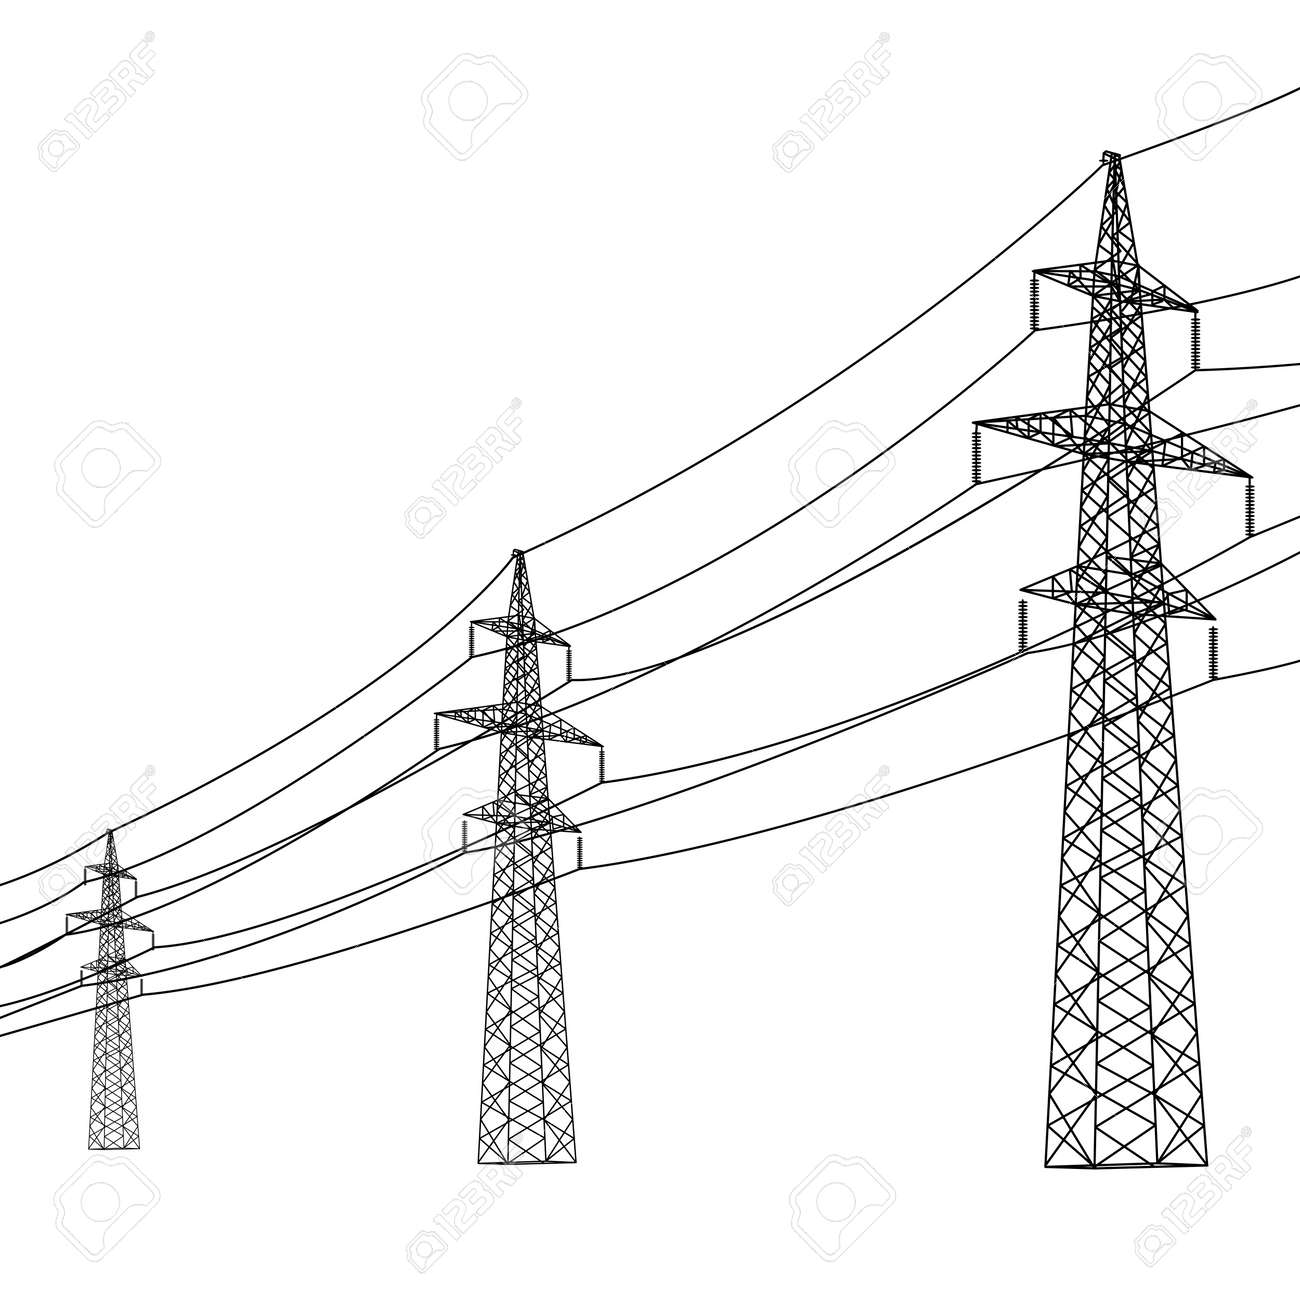 Silhouette of high voltage power lines. Vector illustration. - 20671737